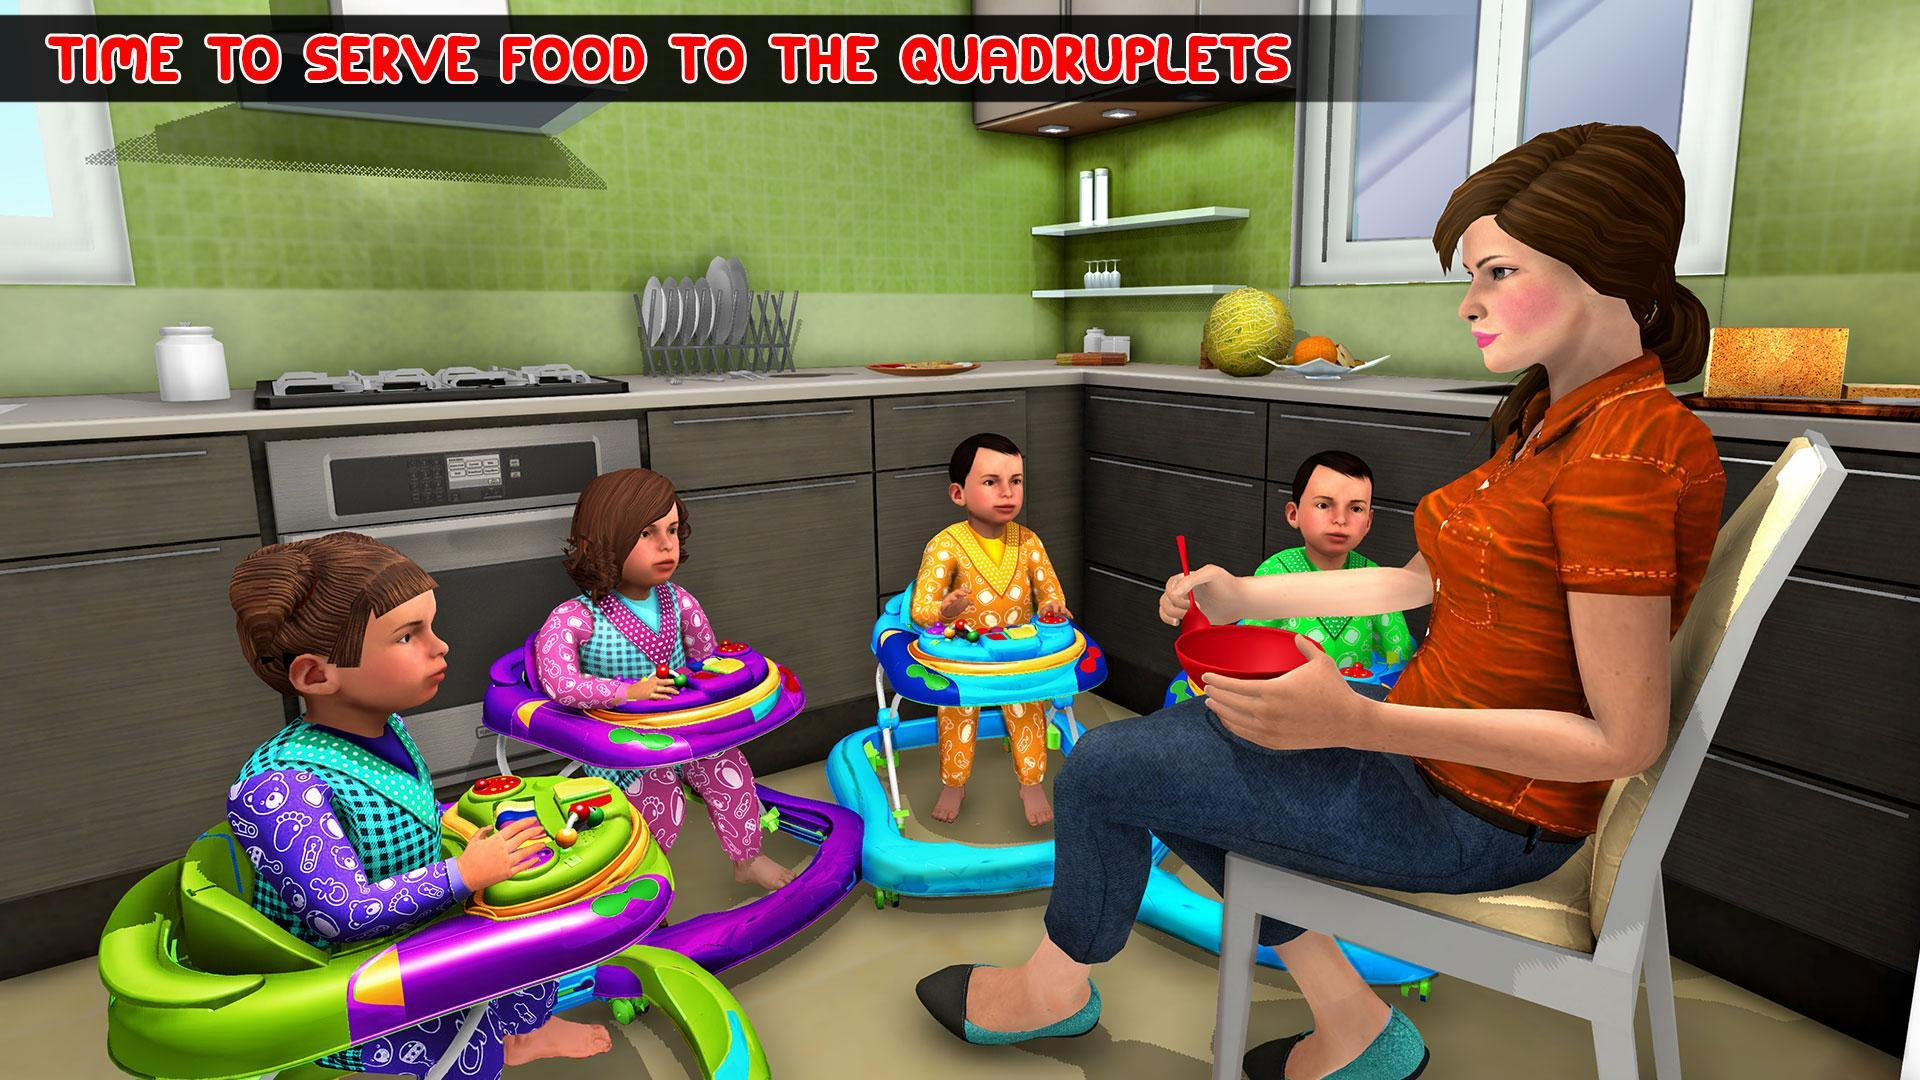 Virtual Mother Baby Quadruplets Family Simulator 1.0.9 Screenshot 13